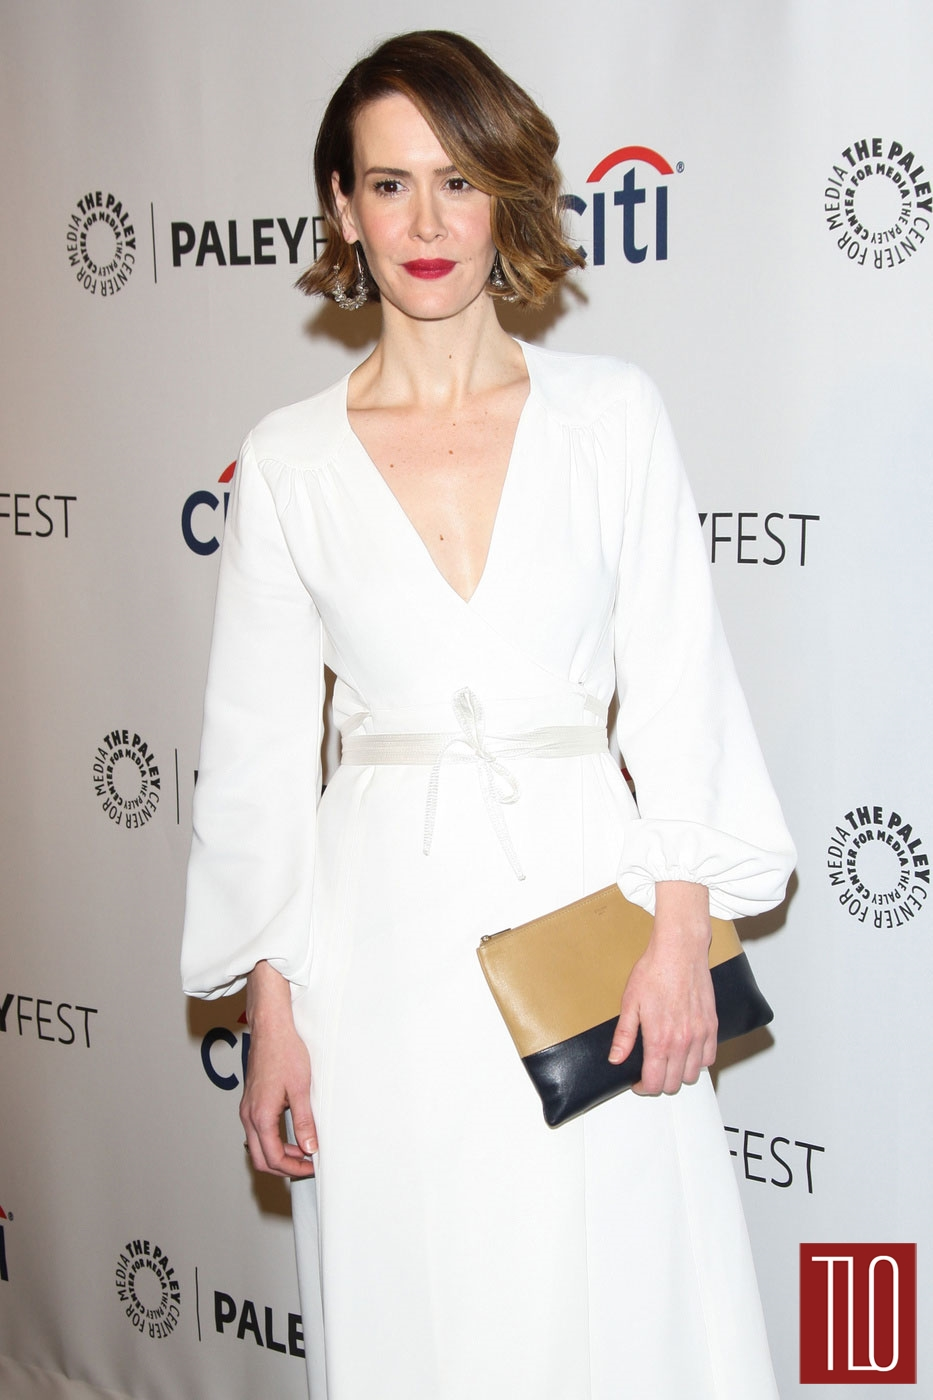 Sarah-Paulson-Marc-Jacobs-PaleyFest-2014-American-Horror-Story-Tom-Lorenzo-Site-TLO (1)